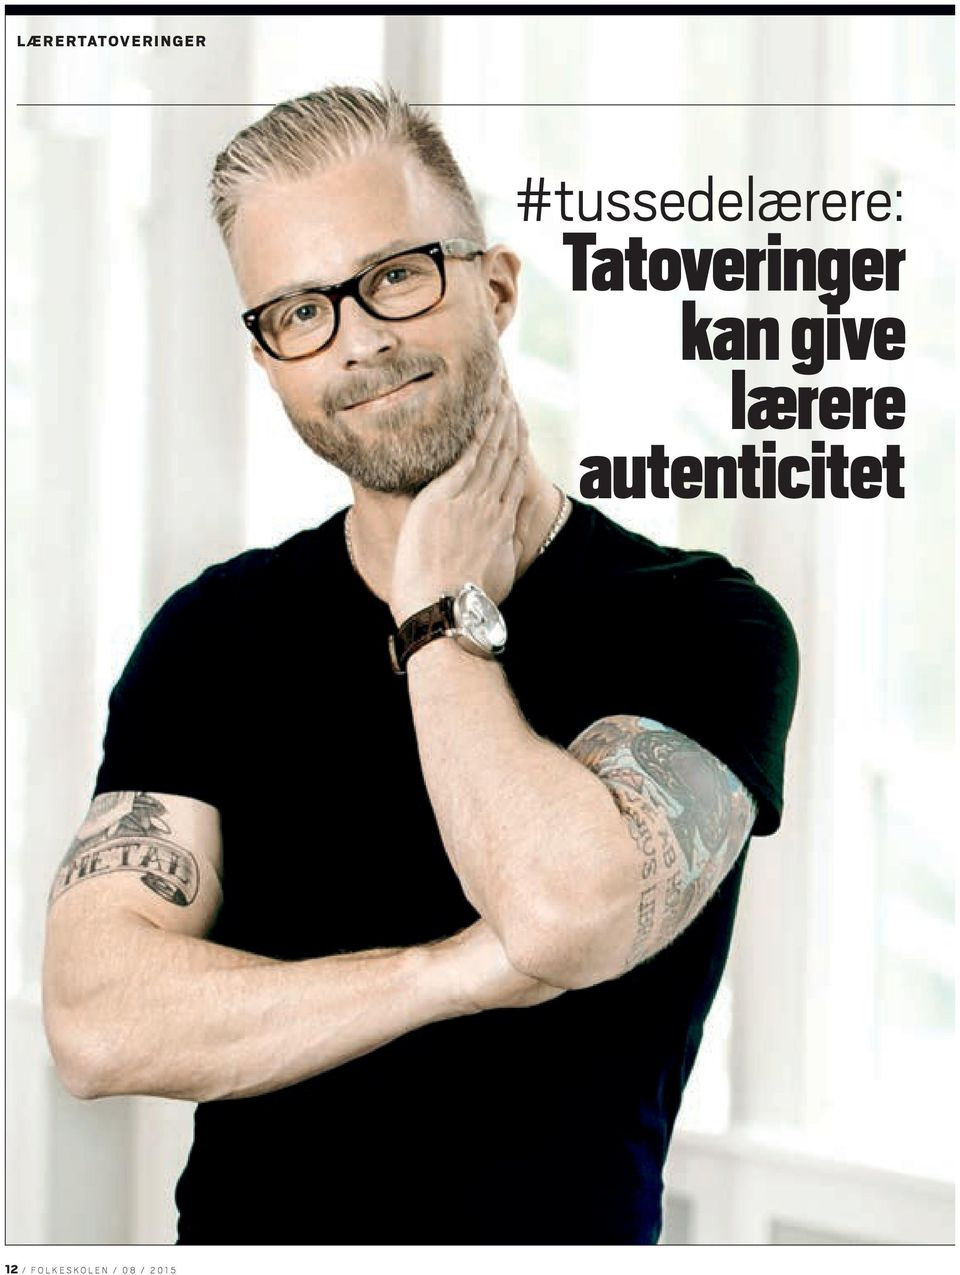 Tatoveringer kan give